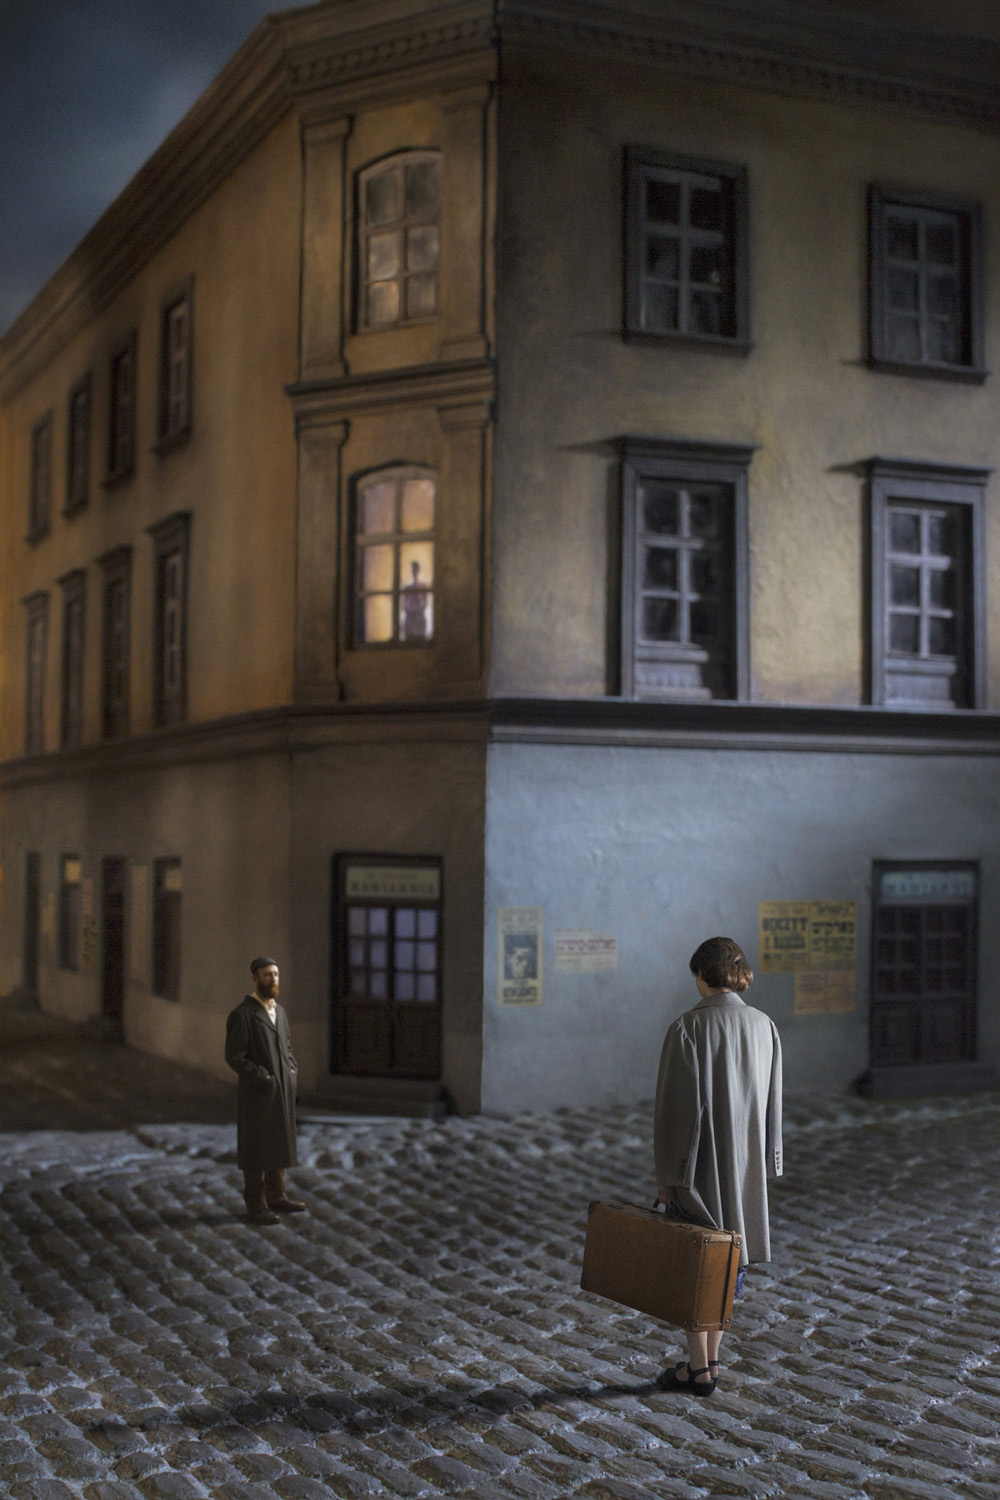 Richard Tuschman Once Upon a Time in Kazimierz LENSCRATCH